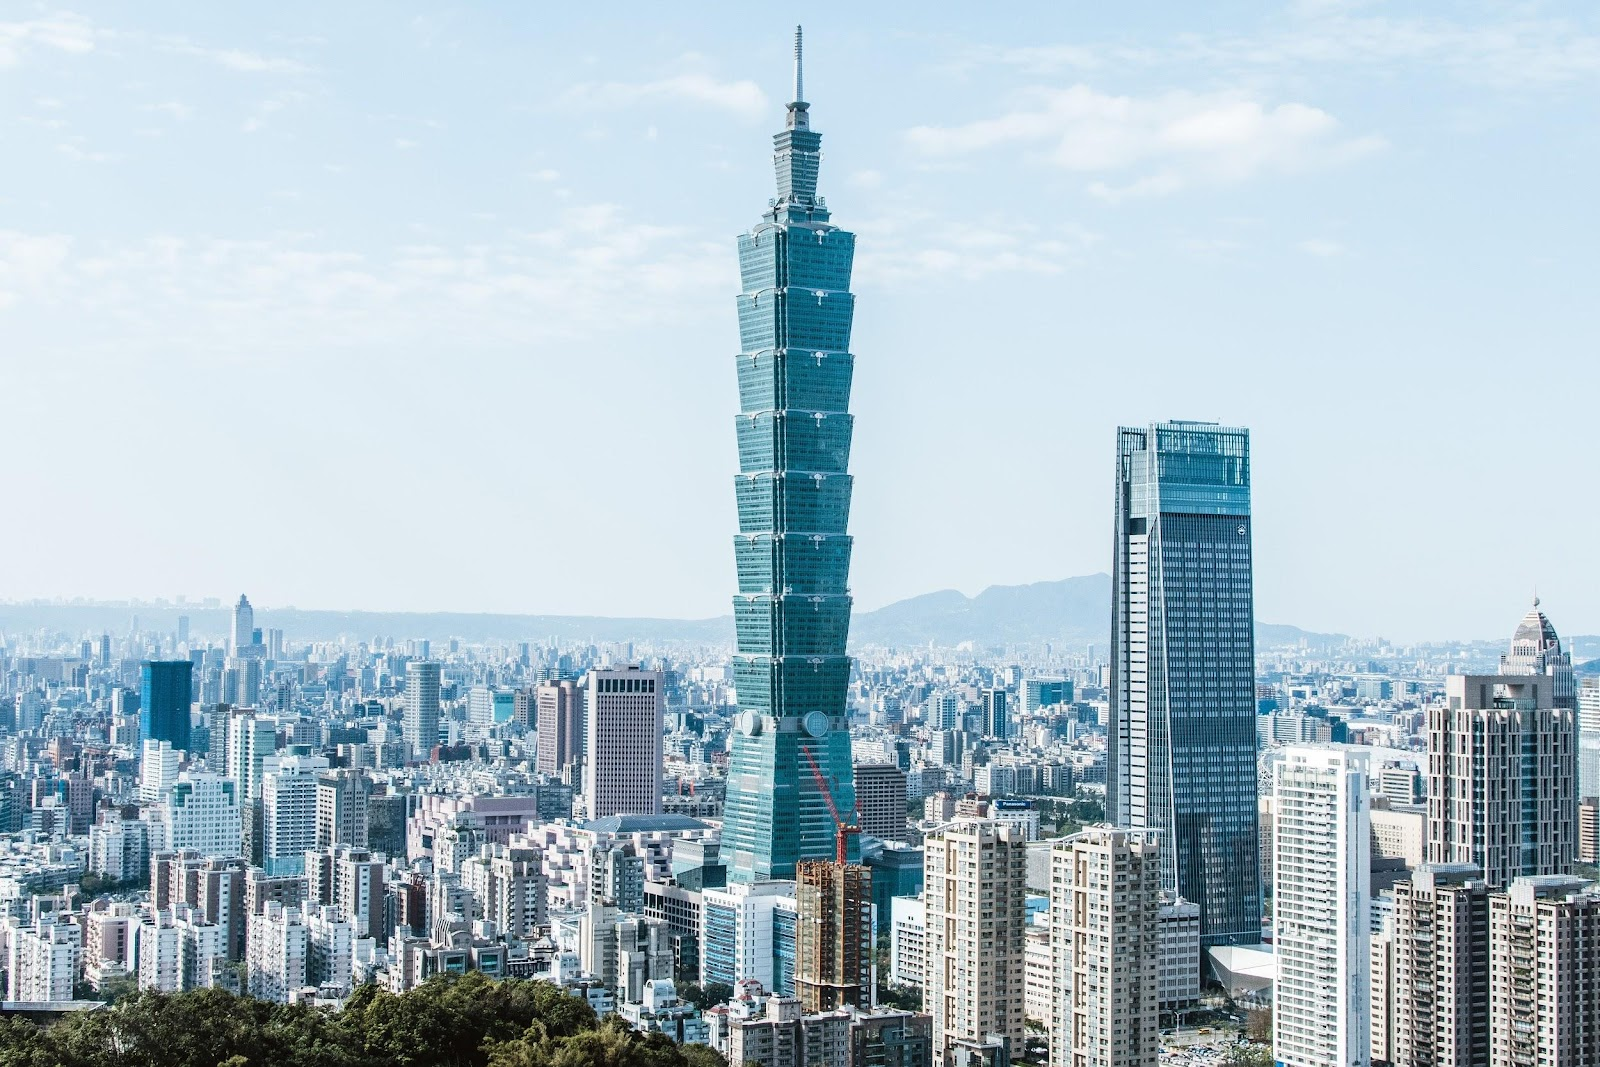 They must have done something right. Skyline of Taipei, Taiwan.